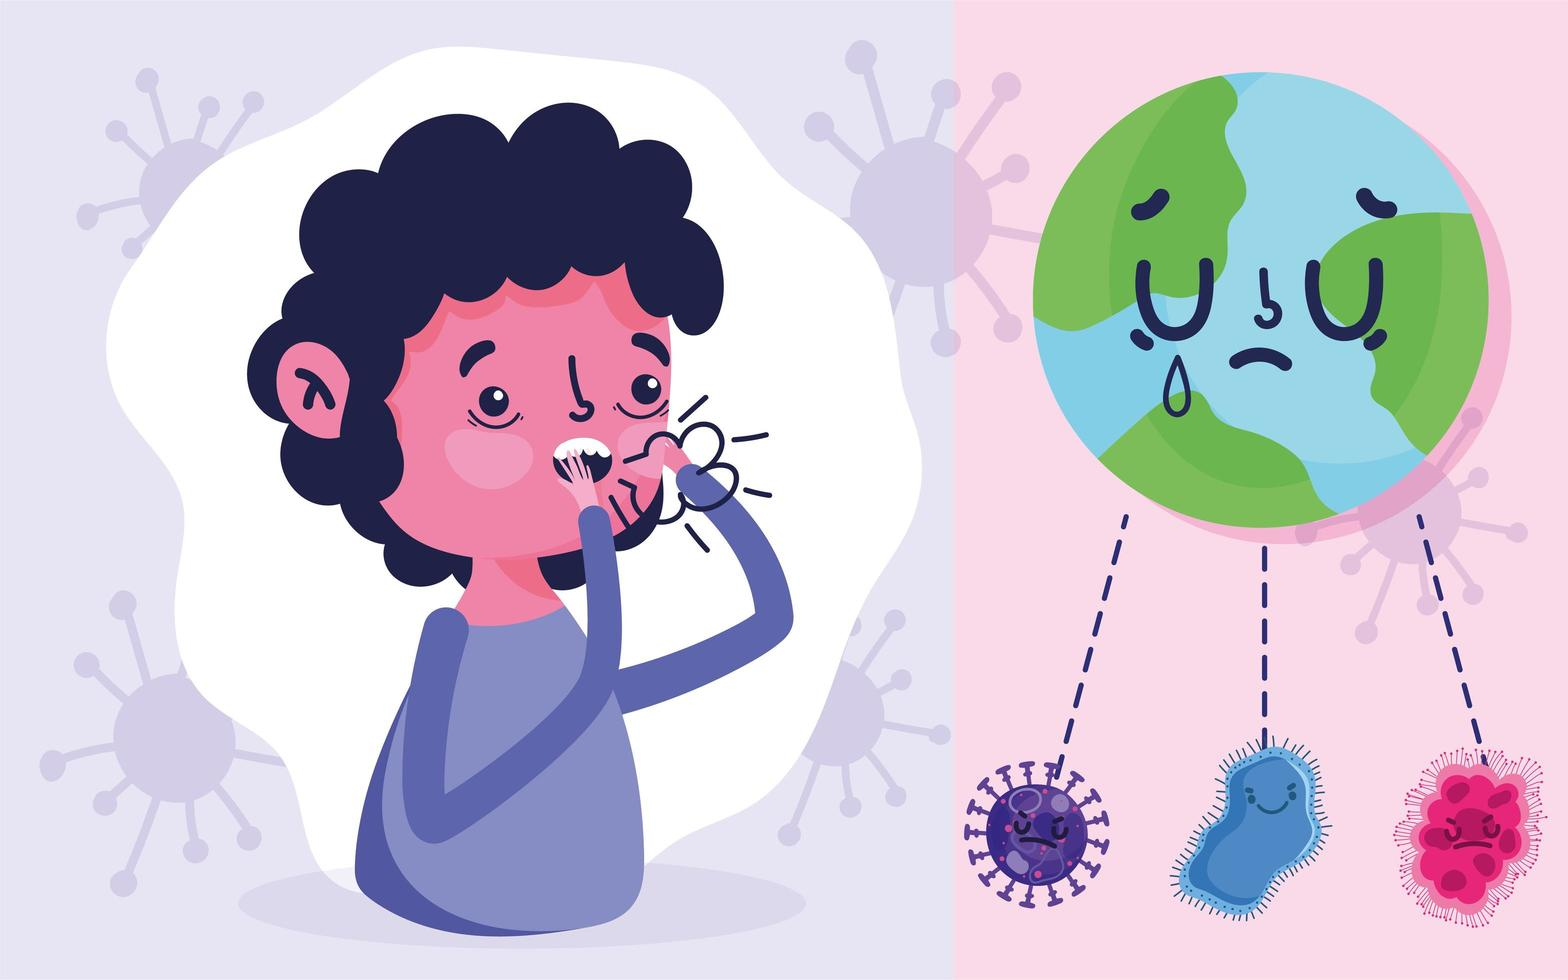 Covid 19 pandemic design with boy coughing with fever vector